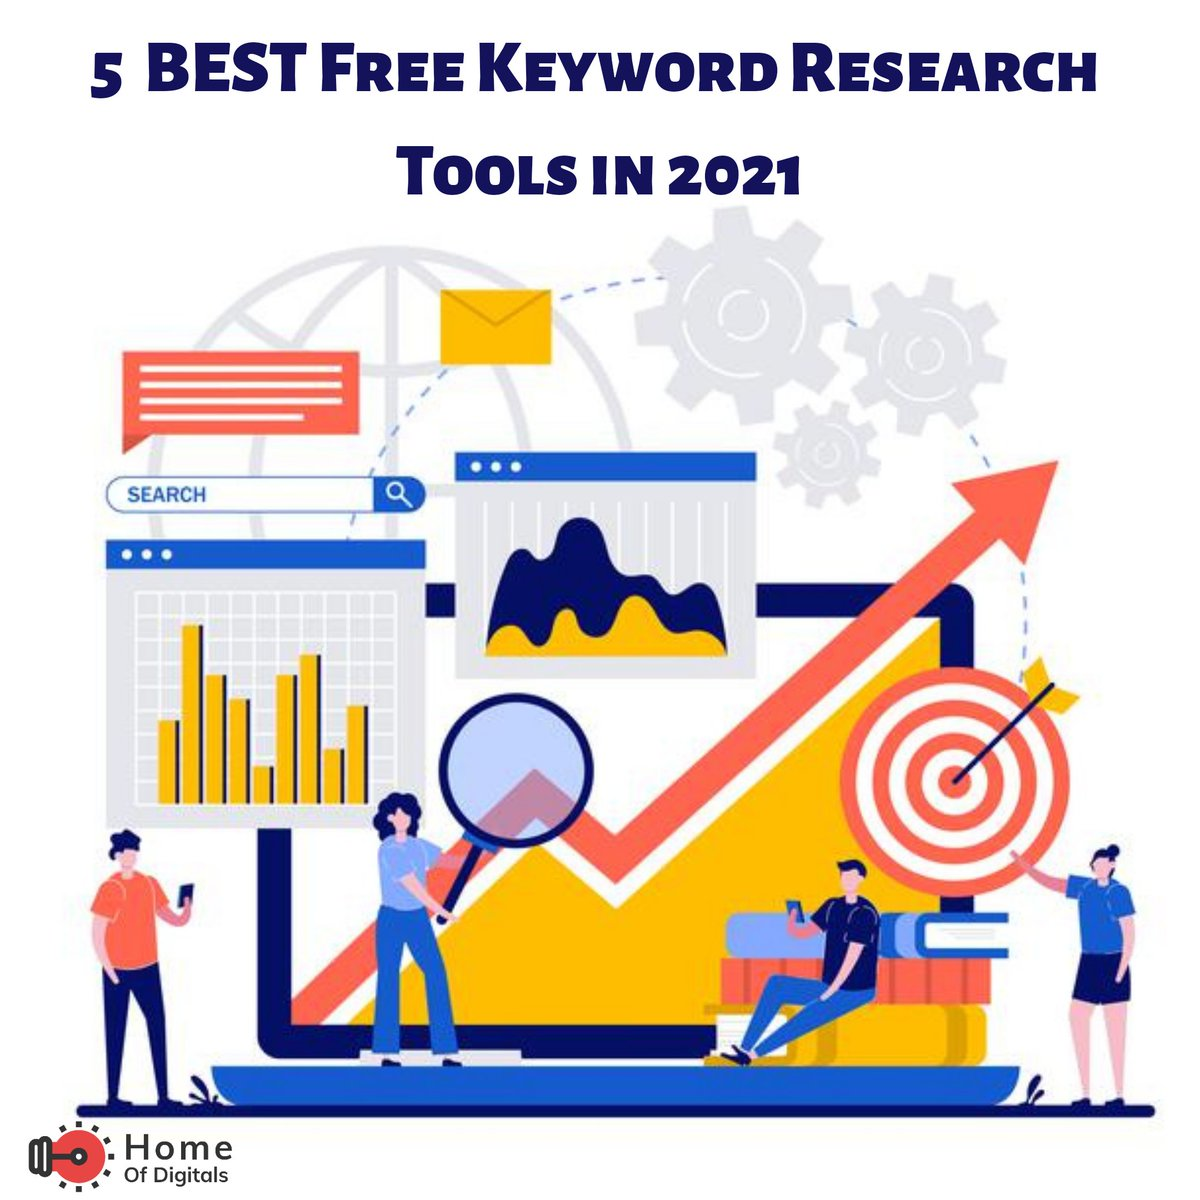 In this post, We will share 5 best free keyword research tools in 2021. #keywordsresearch #keywords #keywordstuffing #keywordsranking #keywordsuggestion #keywordresearch #keywordstrategies #keywordsanalysis #keywordresearchtools #keyword #keyword #keywordtraffic #homeofdigitals https://t.co/RLXH05Xp4F